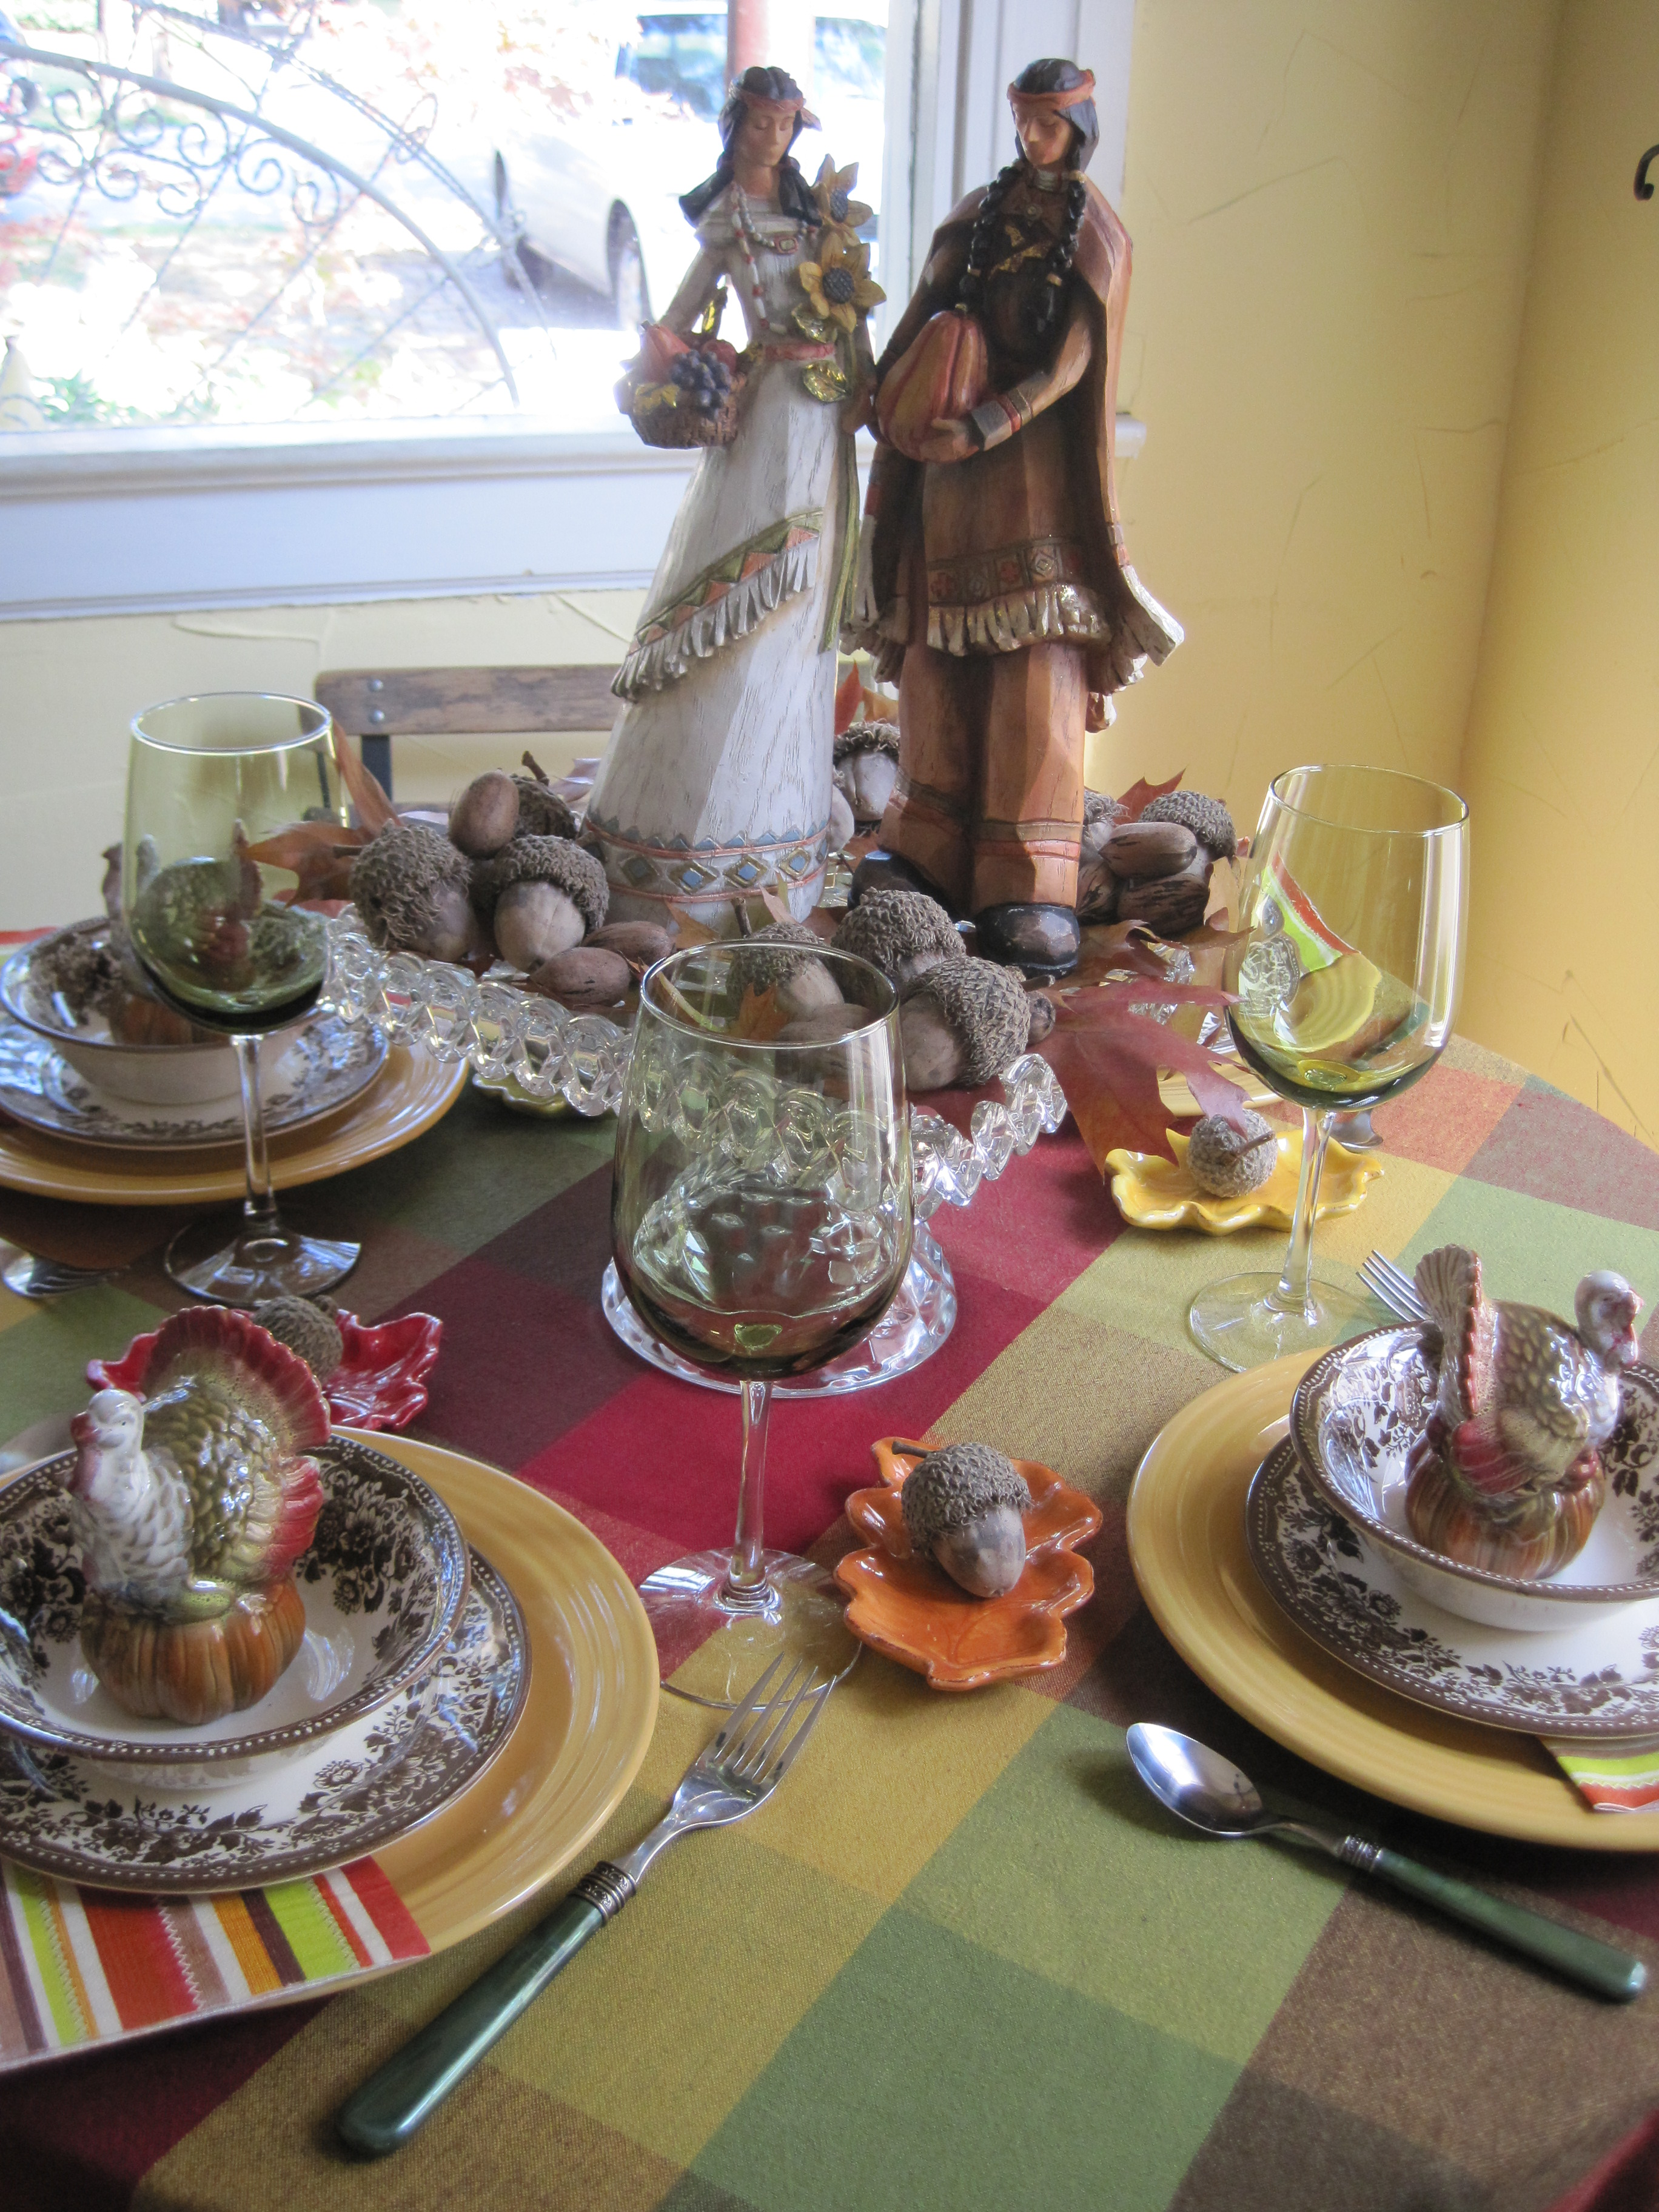 These Native American Figurines Were The Inspiration For The Table. I  Headed To Hobby Lobby One Morning, Intent On Buying Pilgrims, But These  Caught My Eye ...